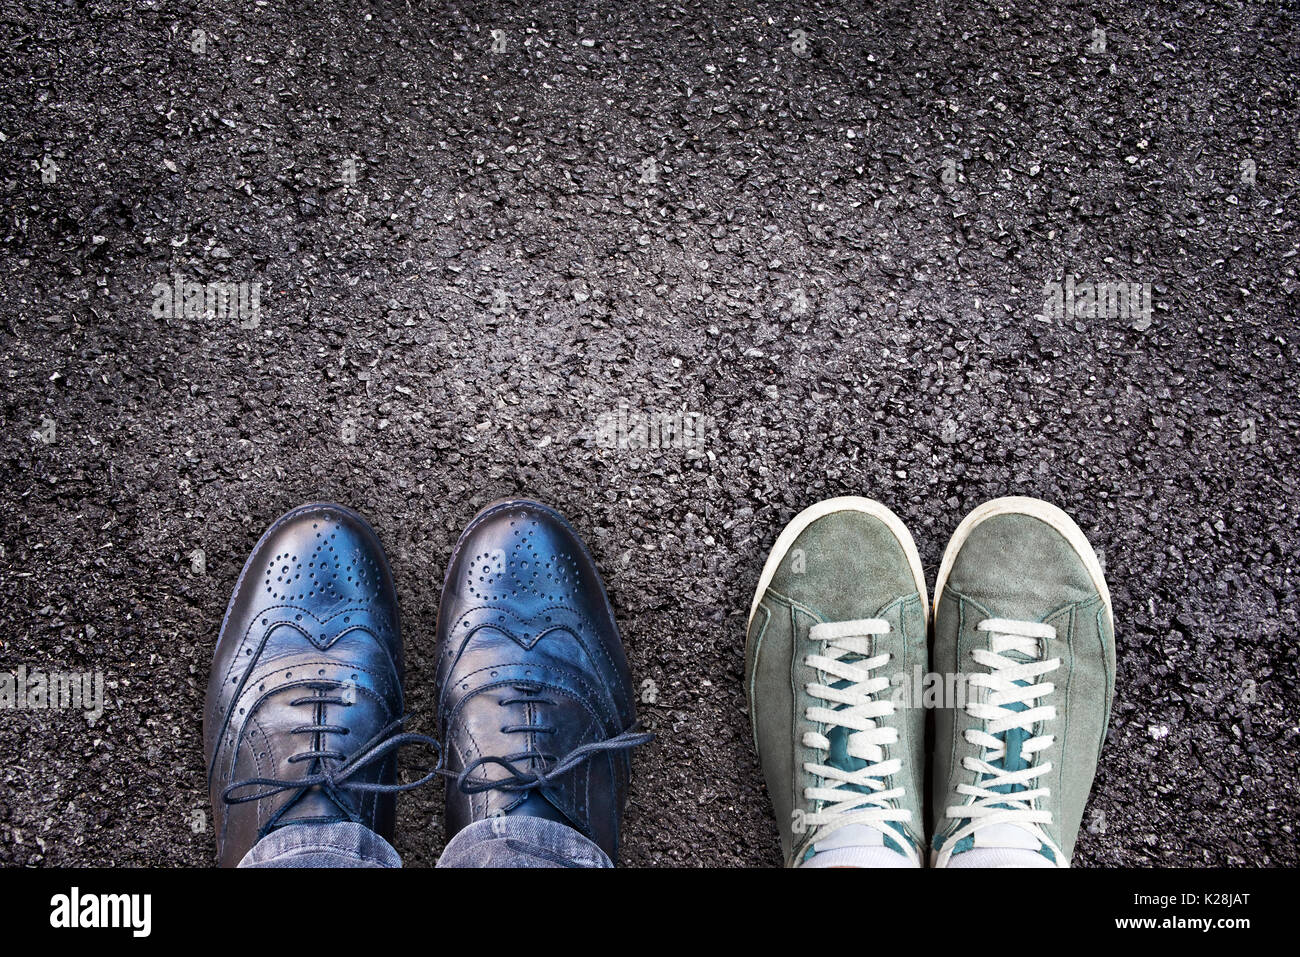 Sneakers and business shoes side by side on asphalt, work life balance concept - Stock Image